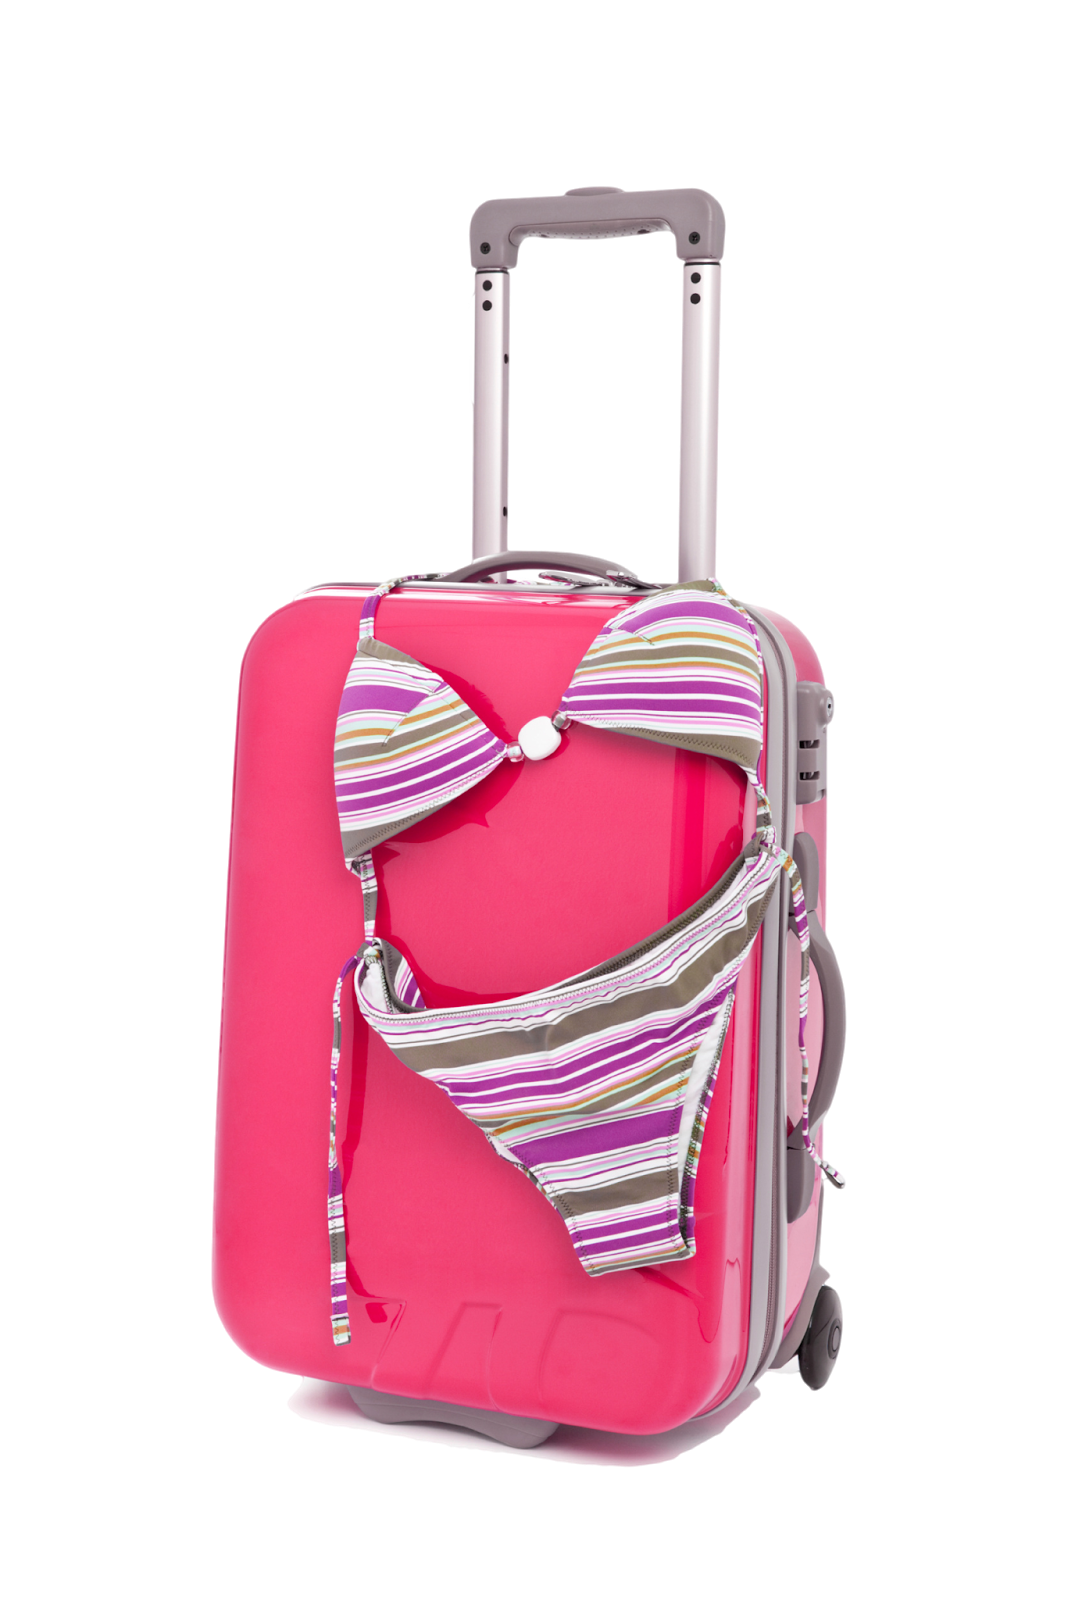 Pack for a tropical vacation at SolEscapes.com